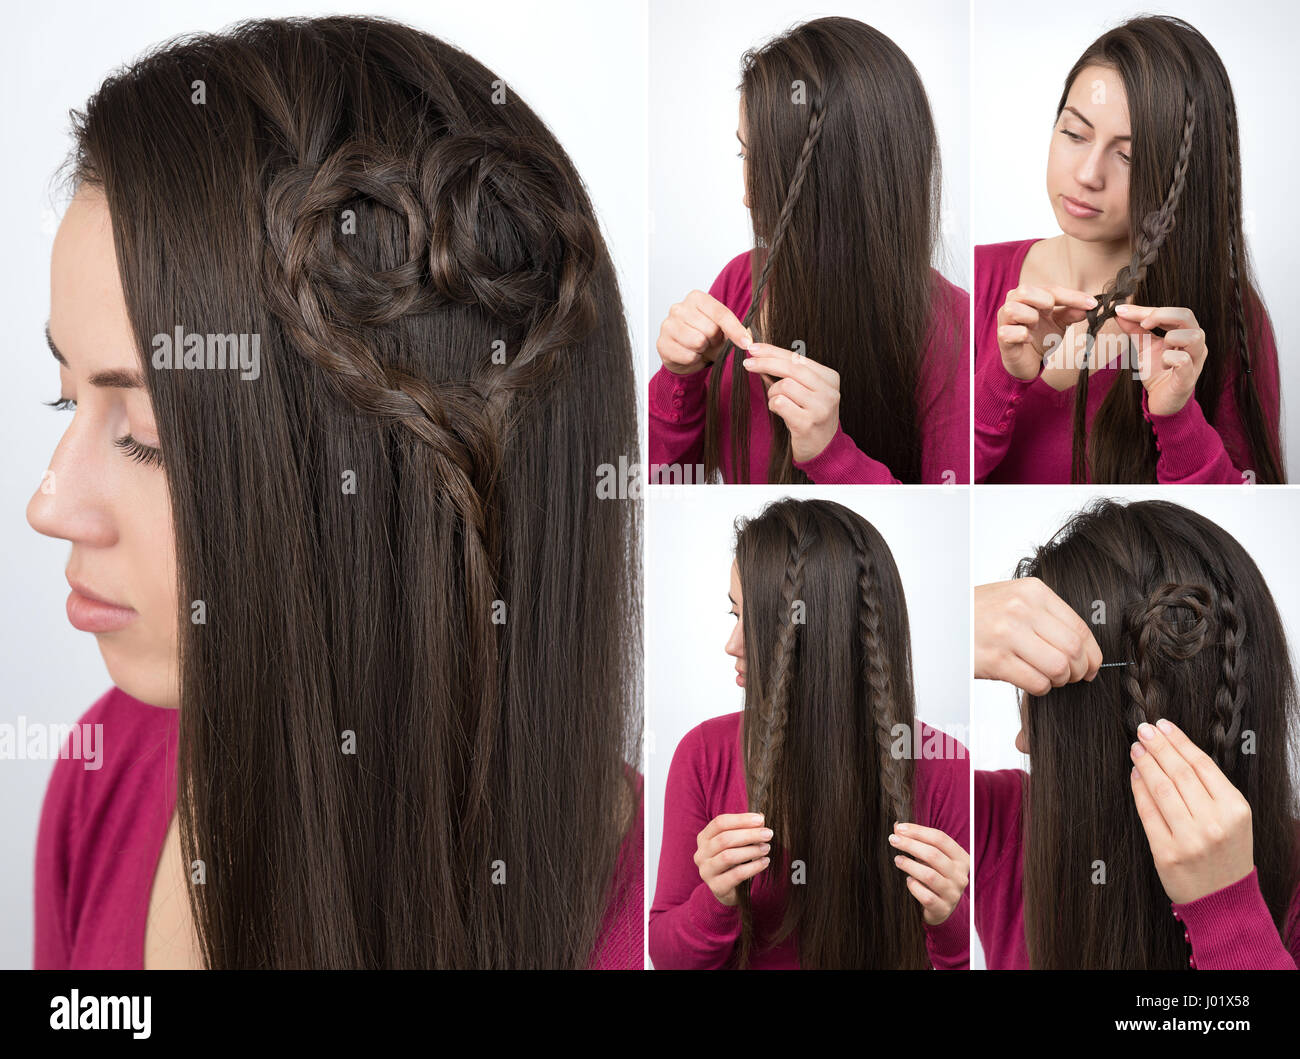 Simple Hairstyle Braided Heart Tutorial Step By Step